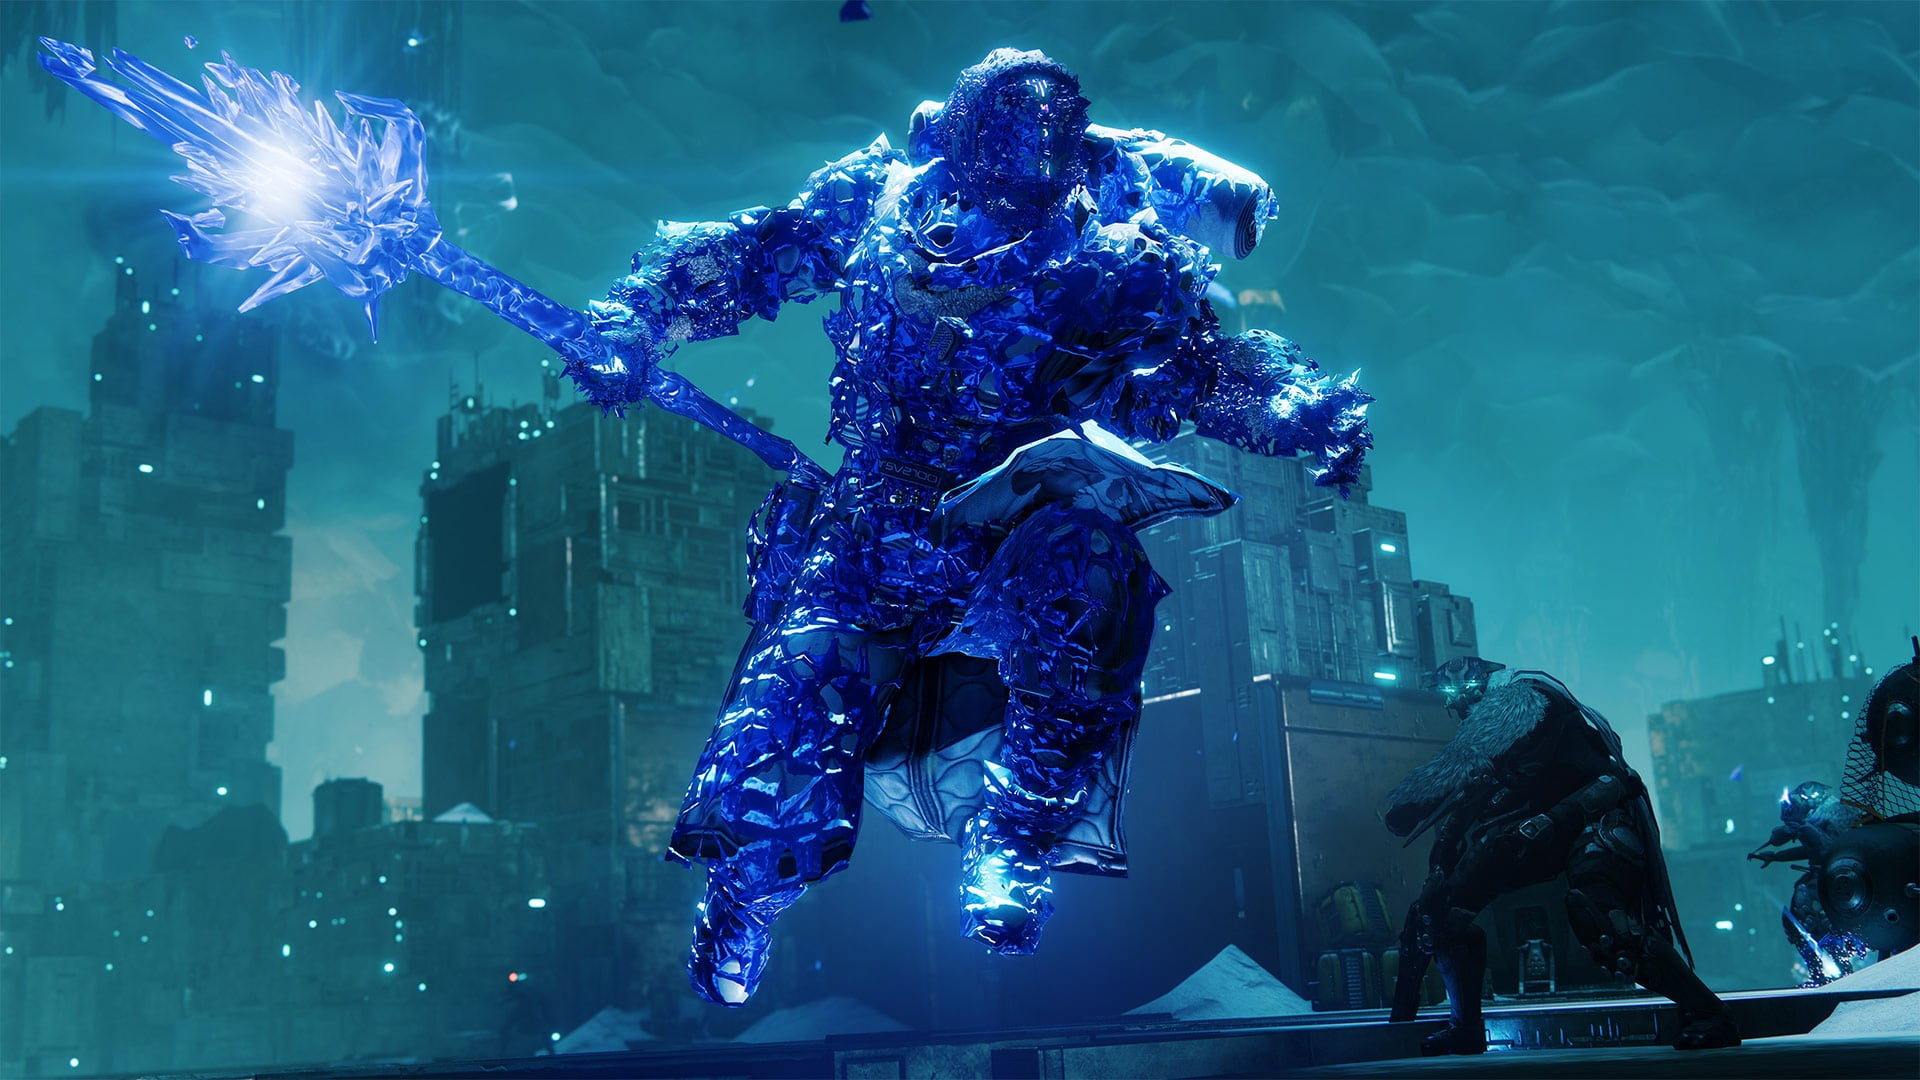 Older Subclasses Could See a Future Upgrade in Destiny 2